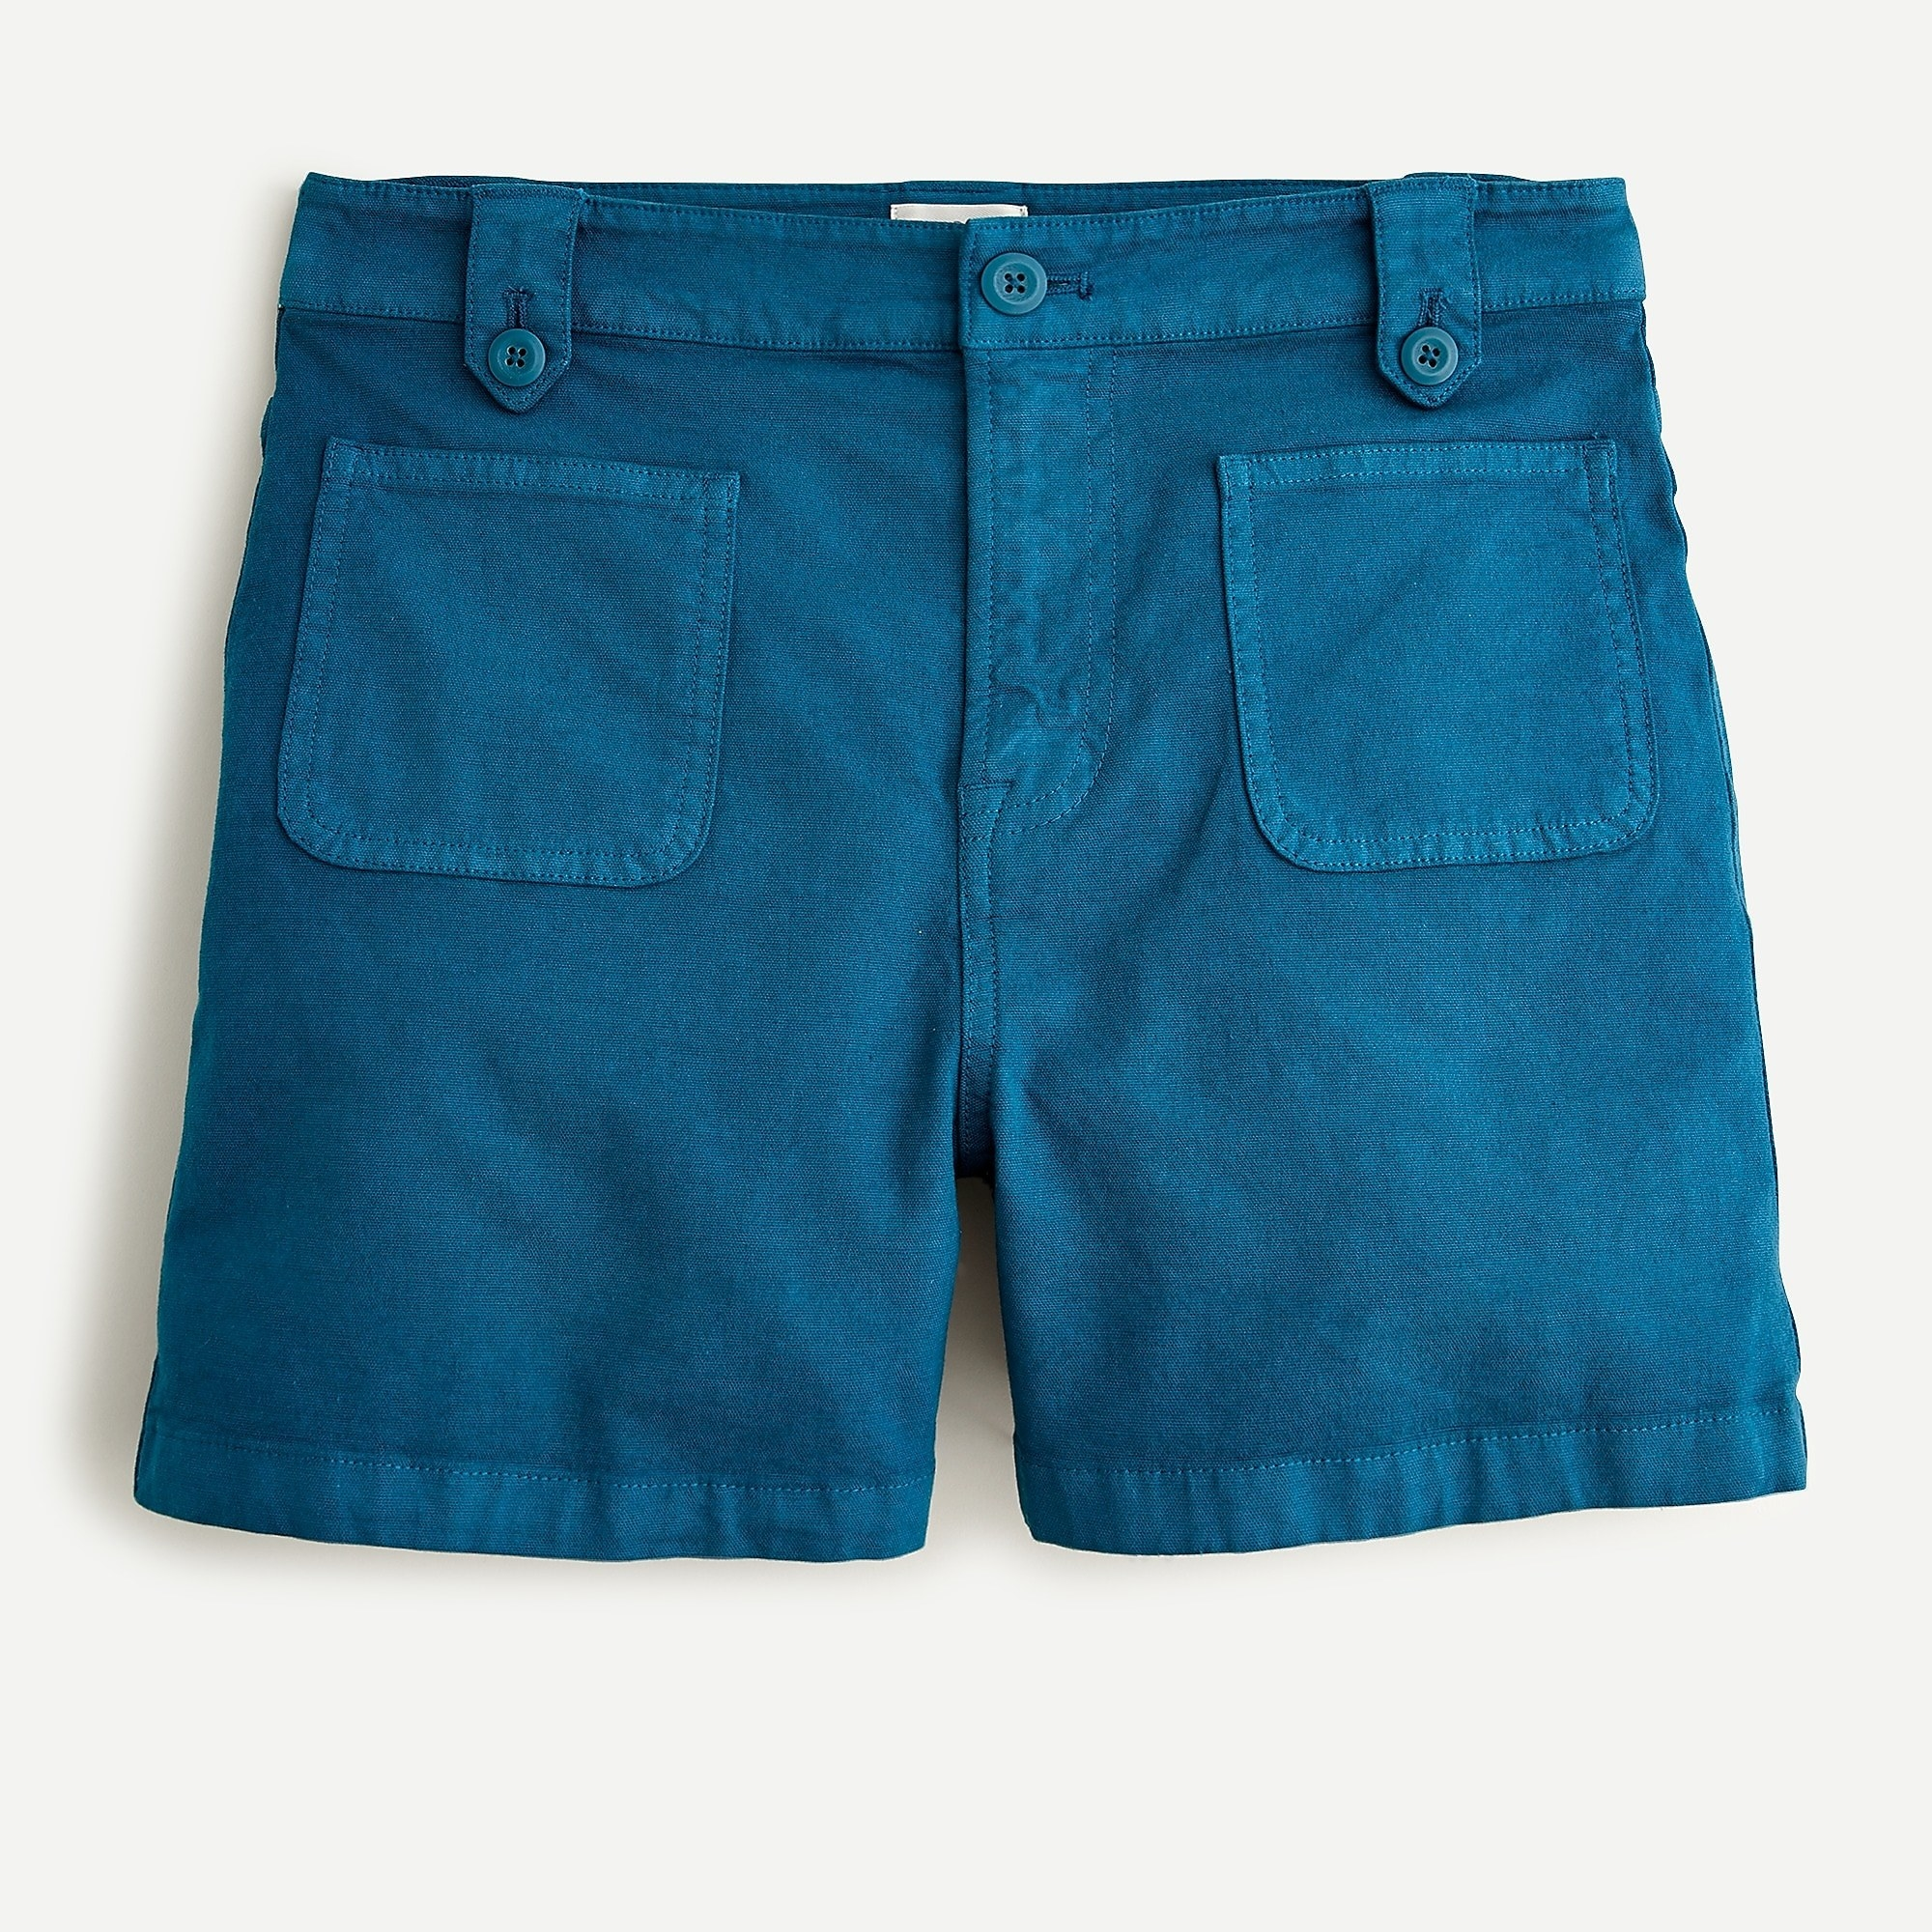 deep blue mid-length shorts with two front pockets and buttoned belt loops